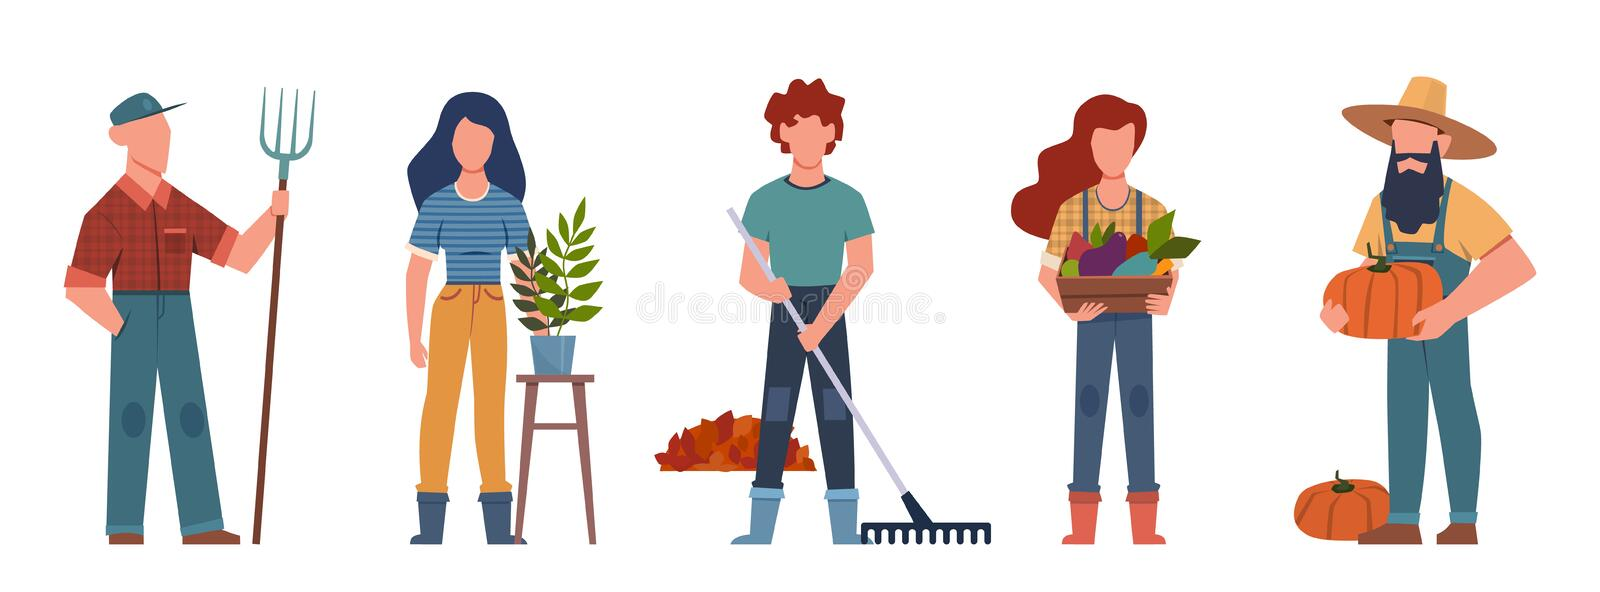 Gardener. Agricultural workers with gardening tools, seasonal job team farmers group, vector characters. Gardener. Agricultural workers with gardening tools royalty free illustration